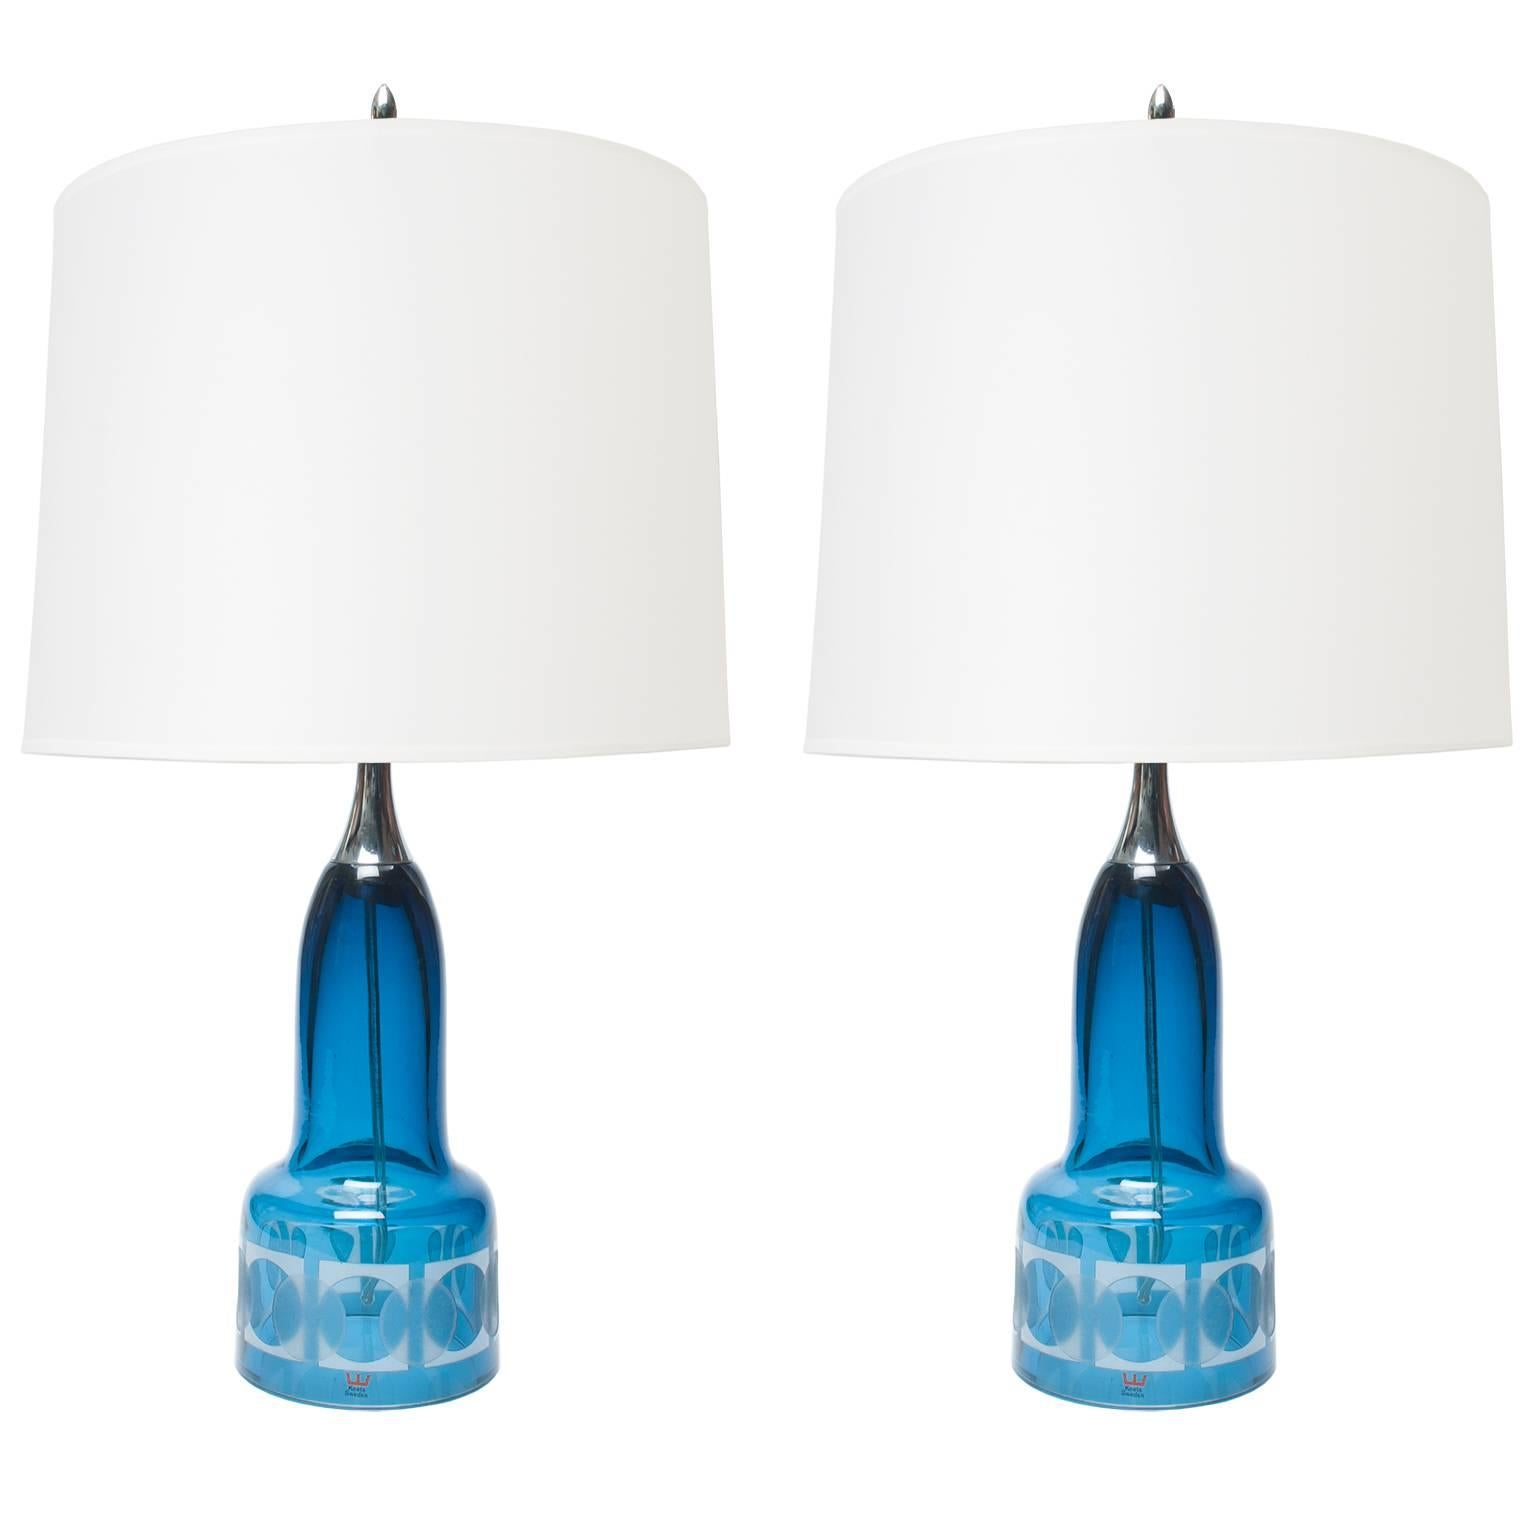 Pair of Scandinavian Modern Blue Etched Glass Lamps by Owe Sandeberg, Kosta